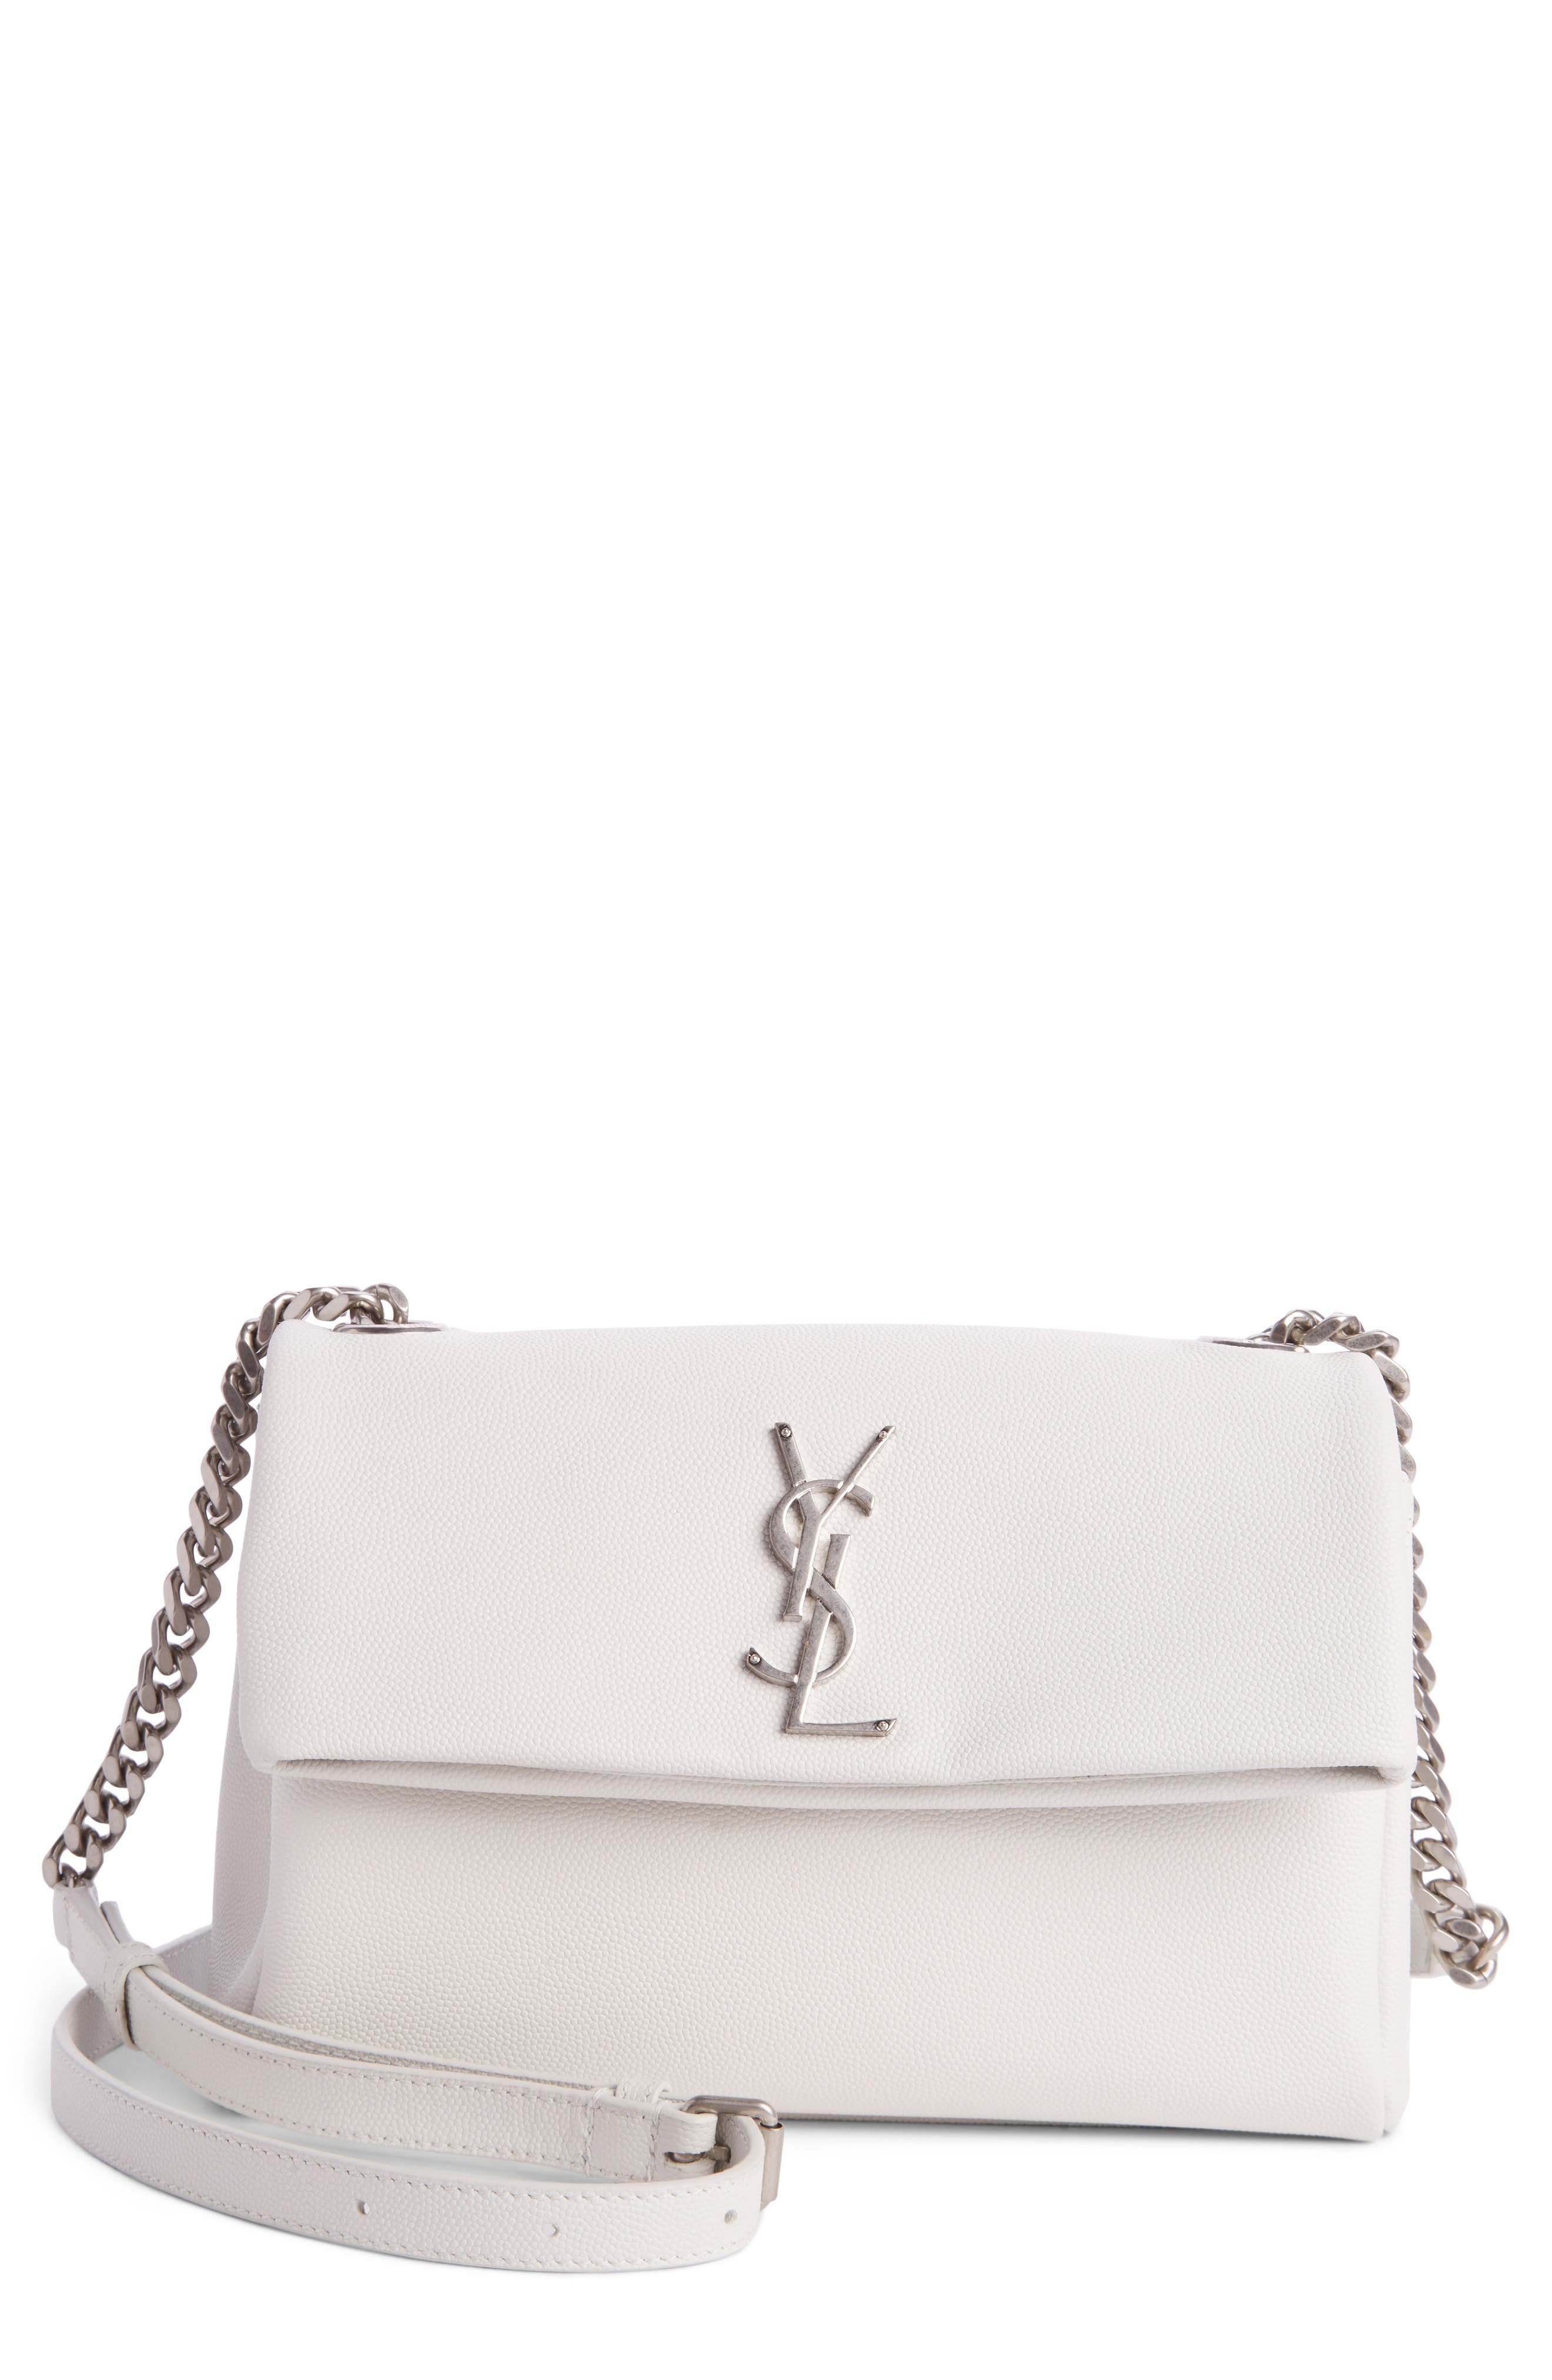 West Hollywood Calfskin Leather Messenger Bag,                             Main thumbnail 1, color,                             Pearl White